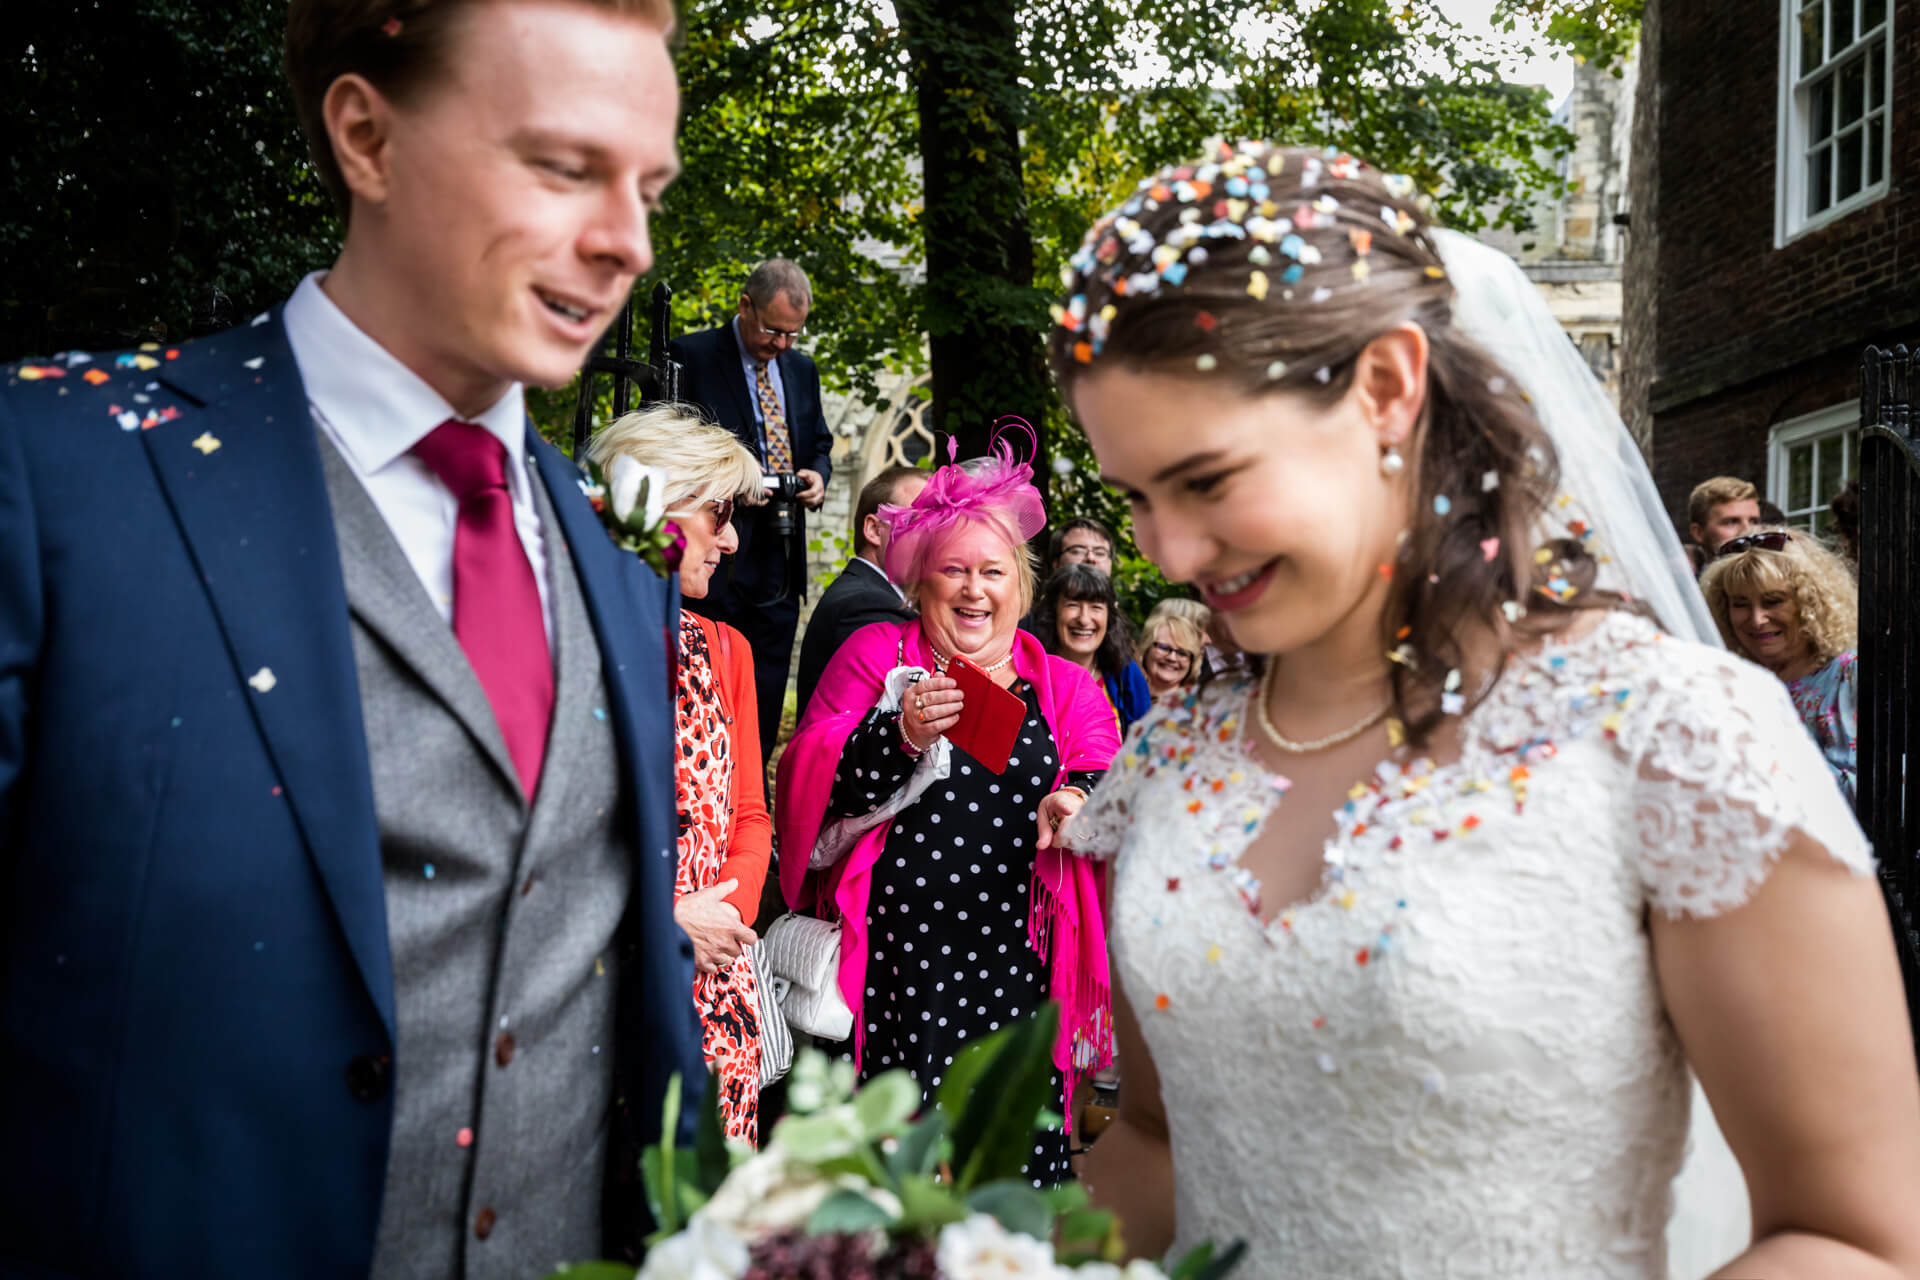 wedding guest smiling at the couple who are covered in confetti